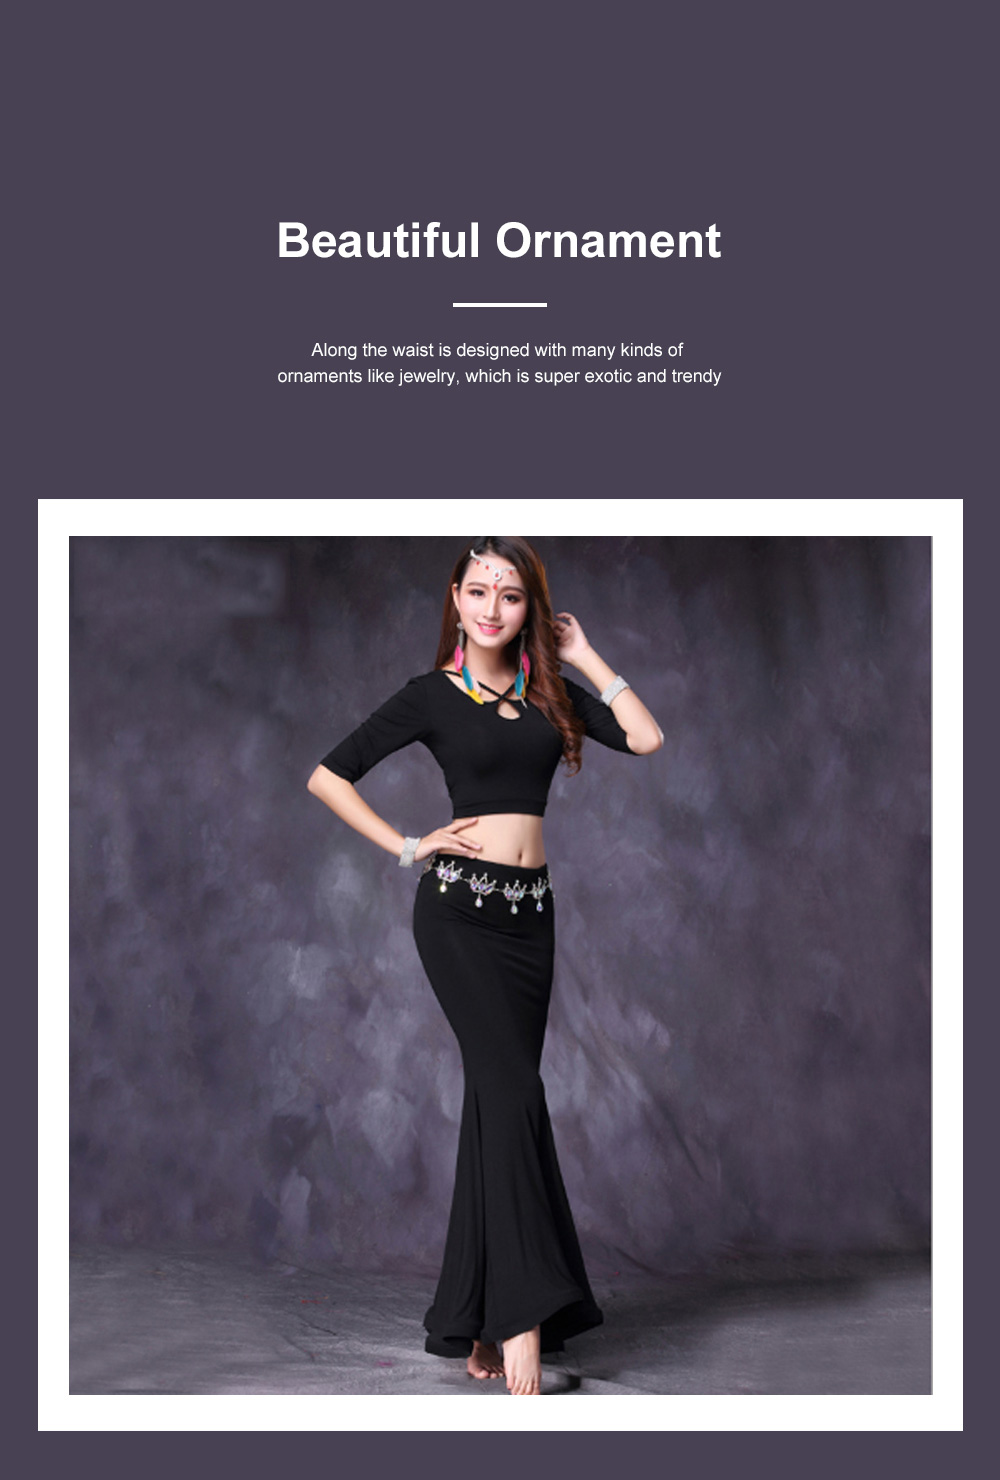 Belly Dance Costume Solid Color Set with Jewelry Decoration Fishtail Hemline Sheathe Dress 2